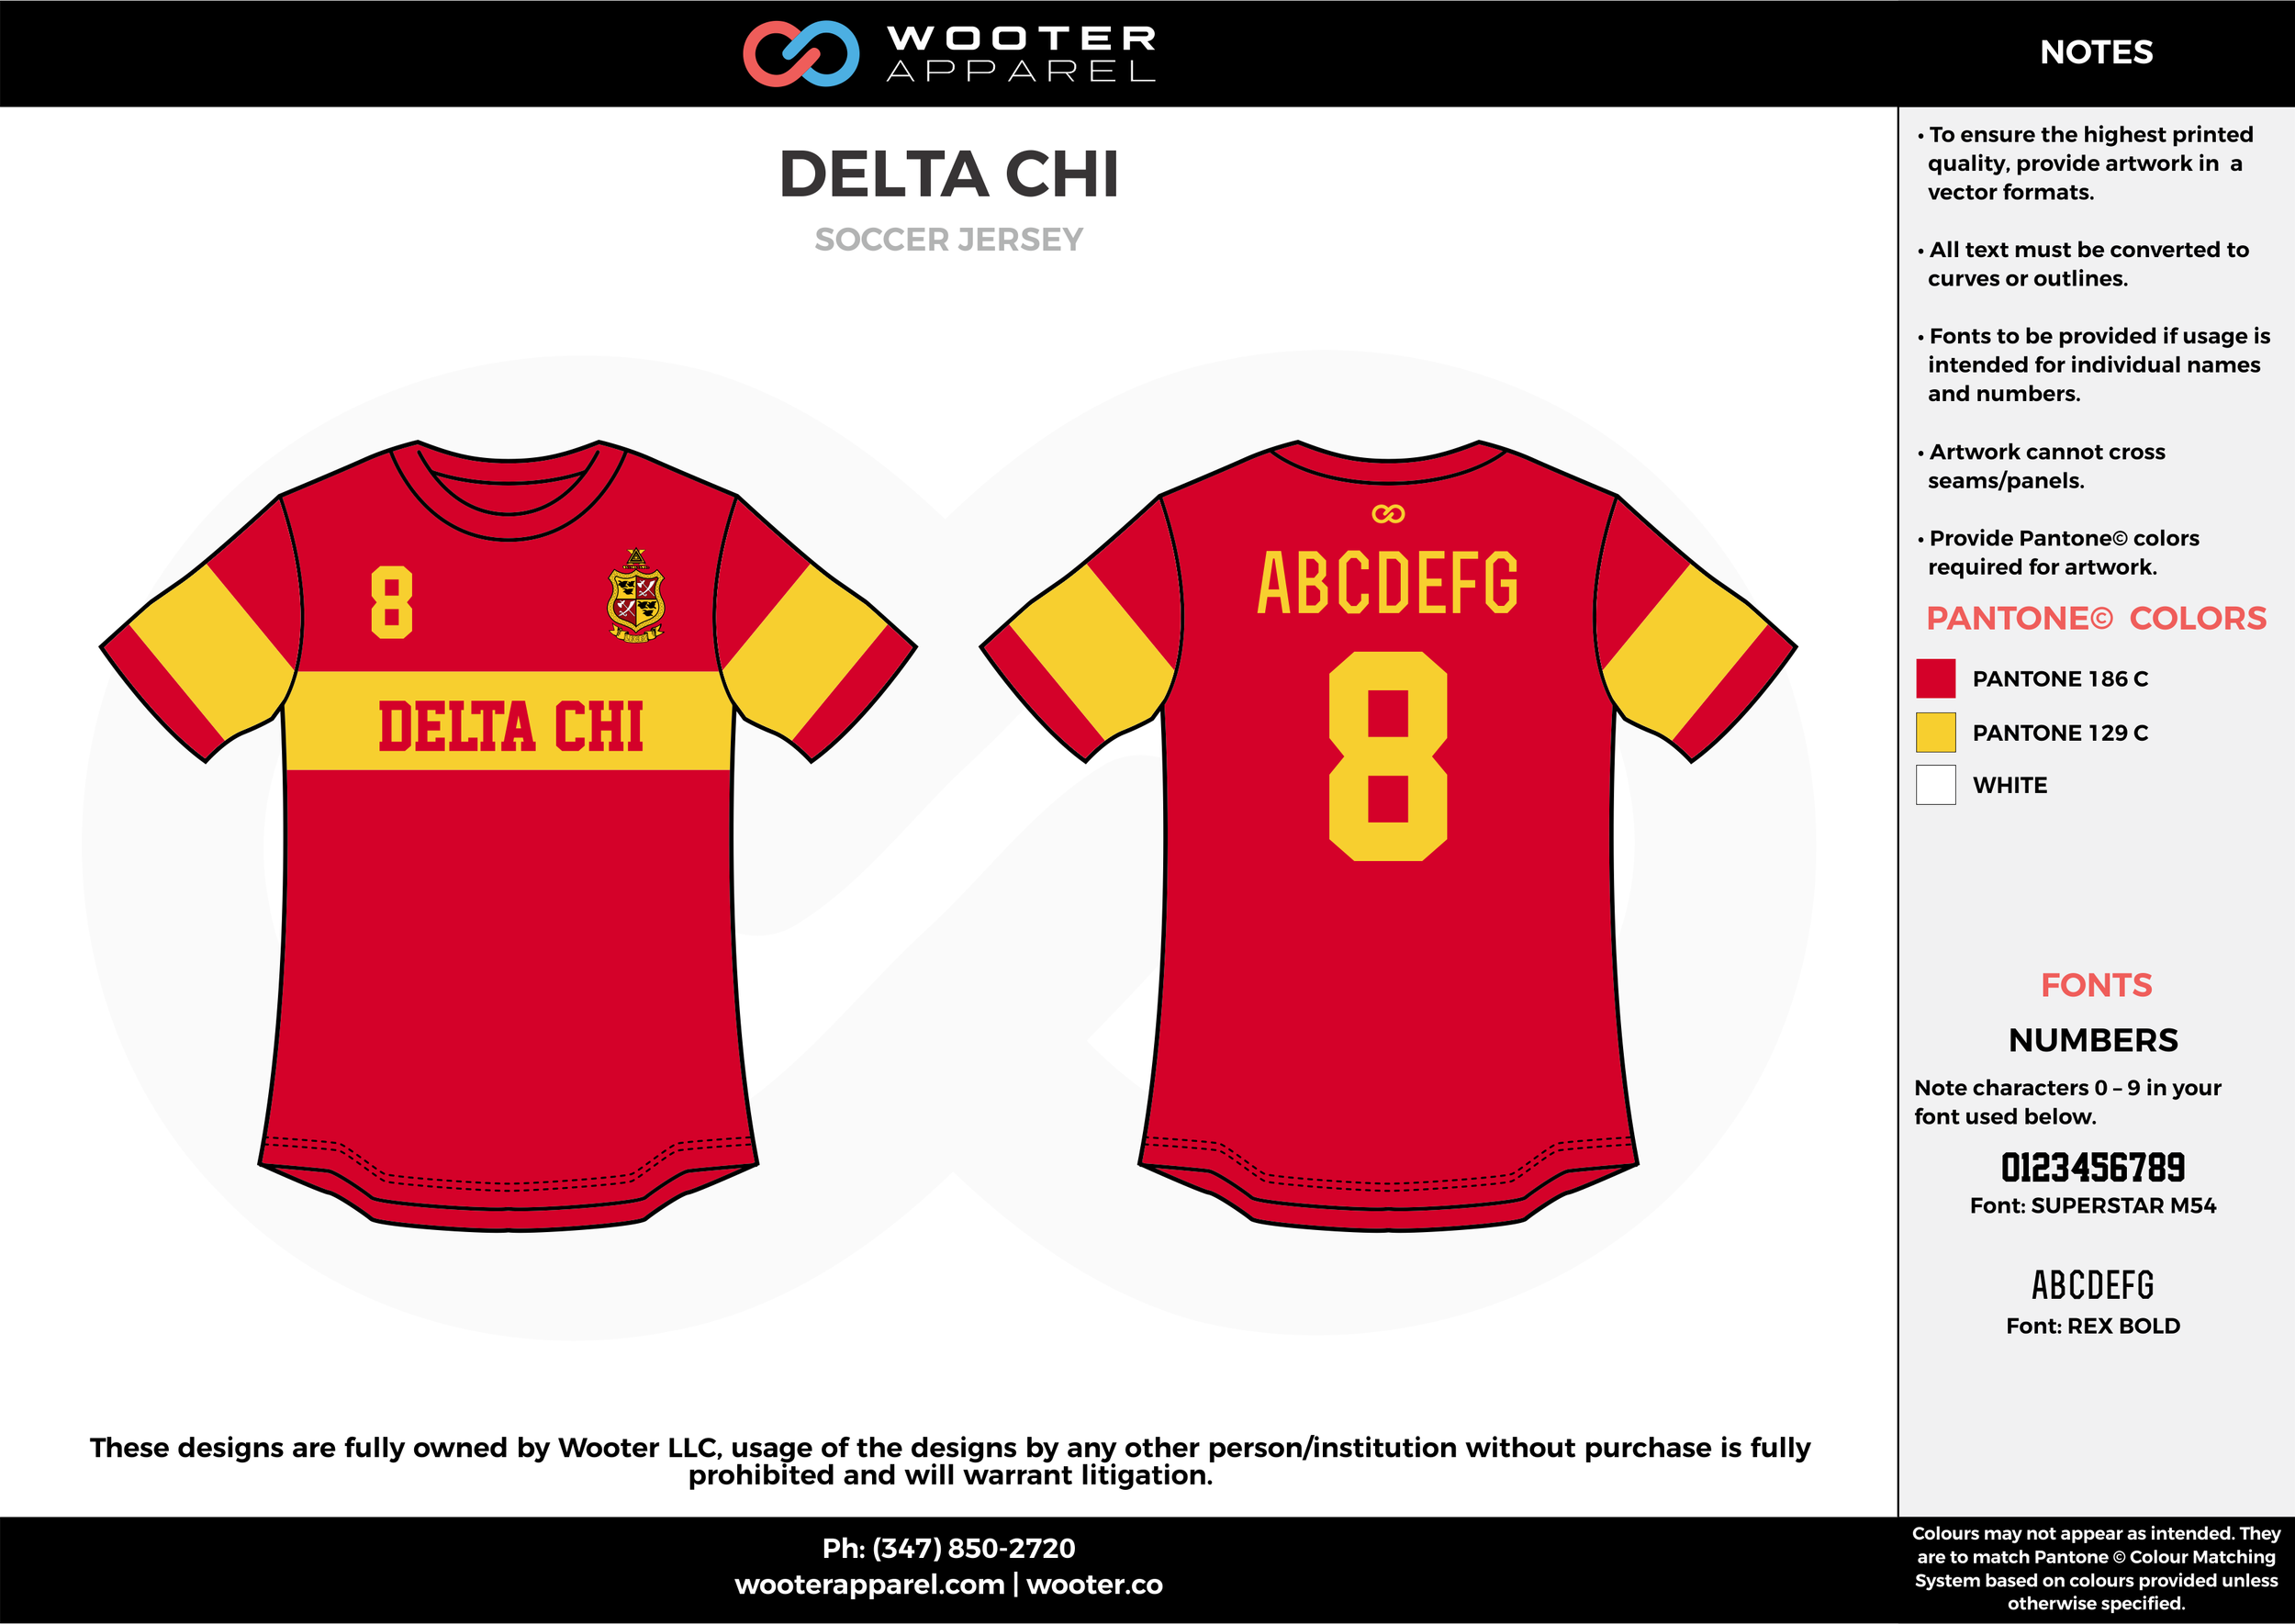 DELTA CHI red yellow custom sublimated soccer uniform jersey shirt